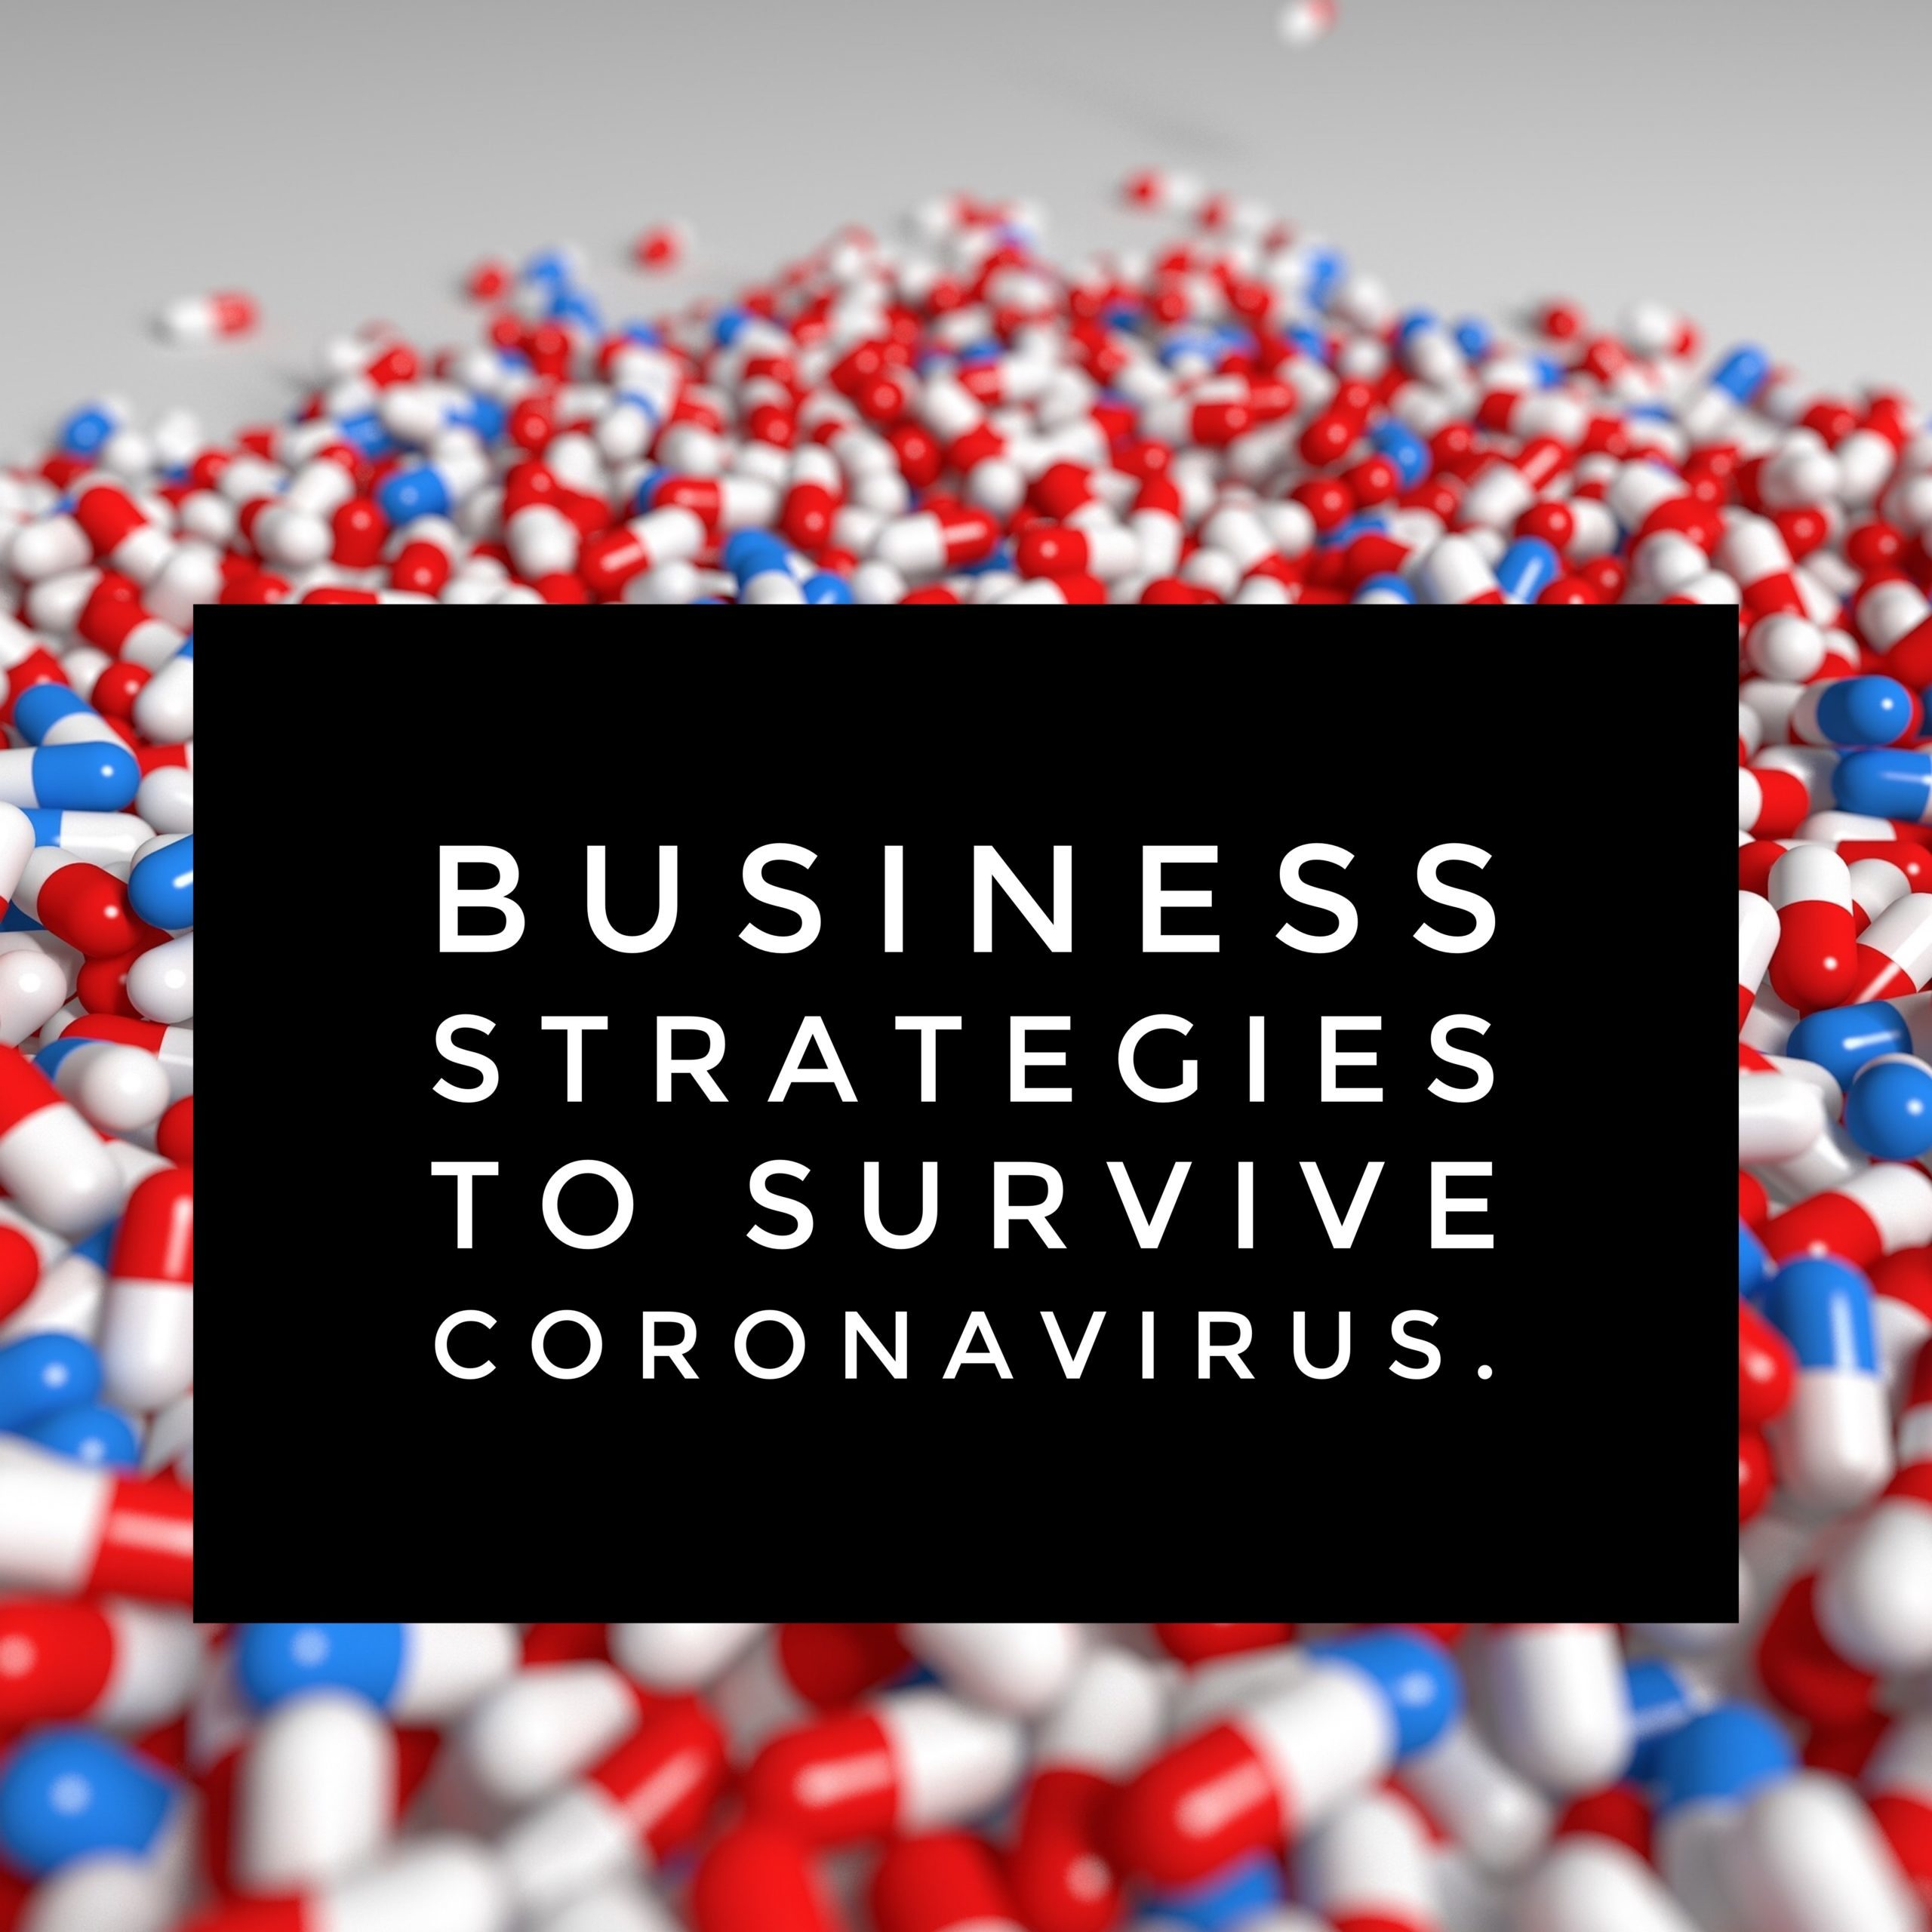 Business Strategies to Survive Coronavirus.